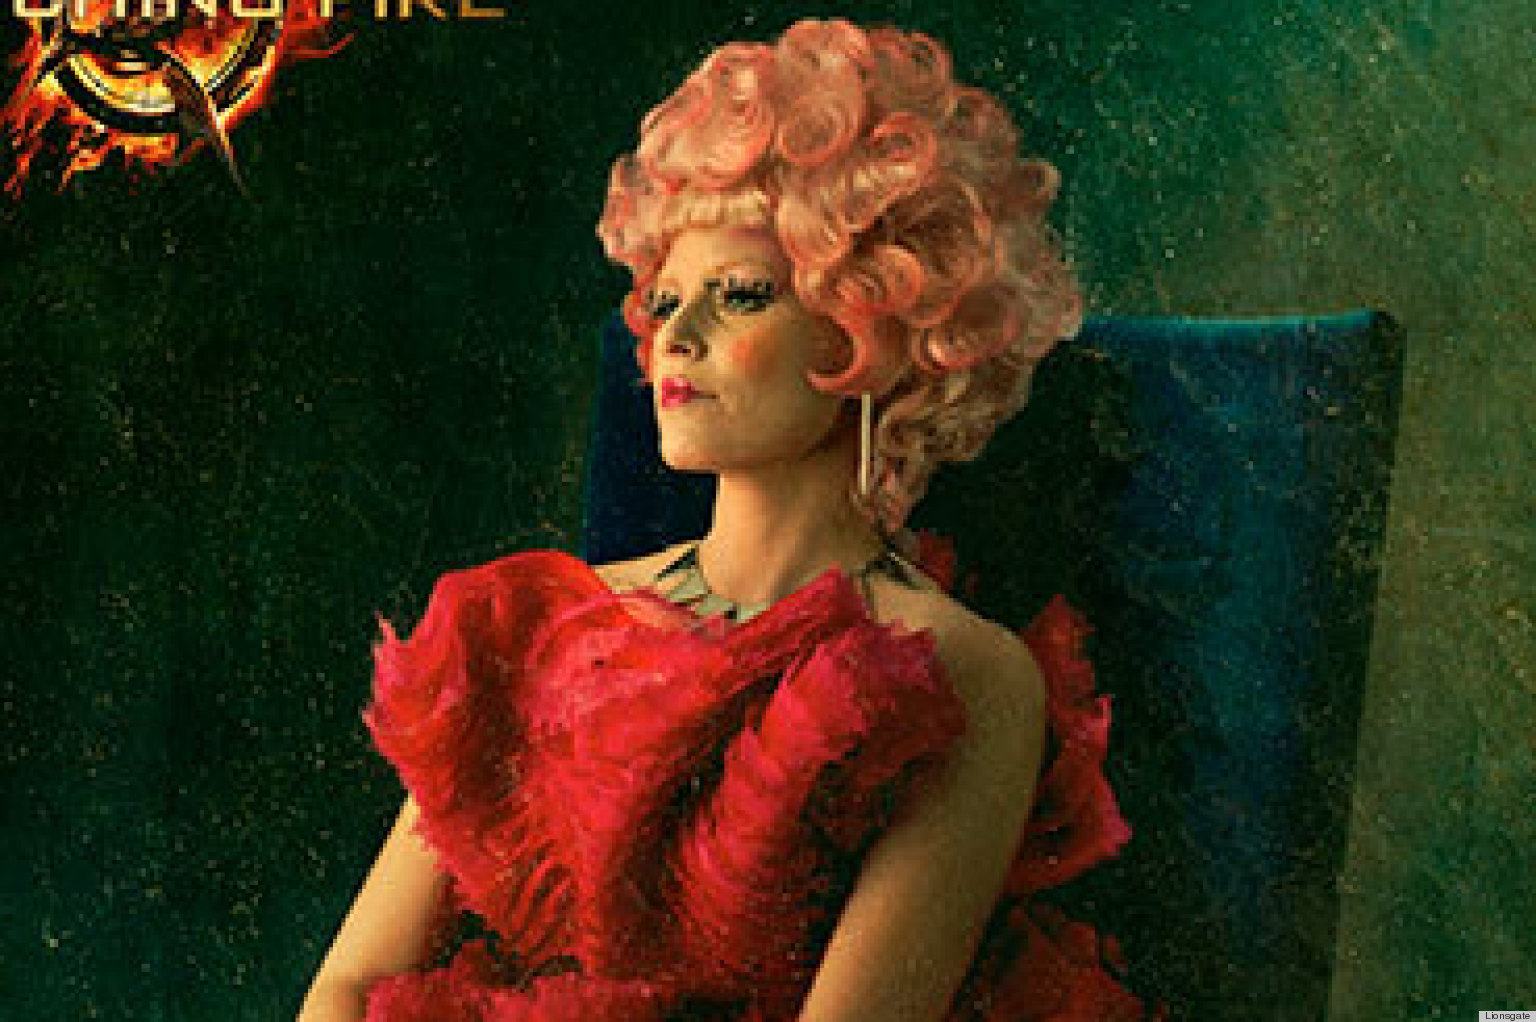 39 hunger games 39 fashion gets a serious boost with alexander mcqueen photos huffpost